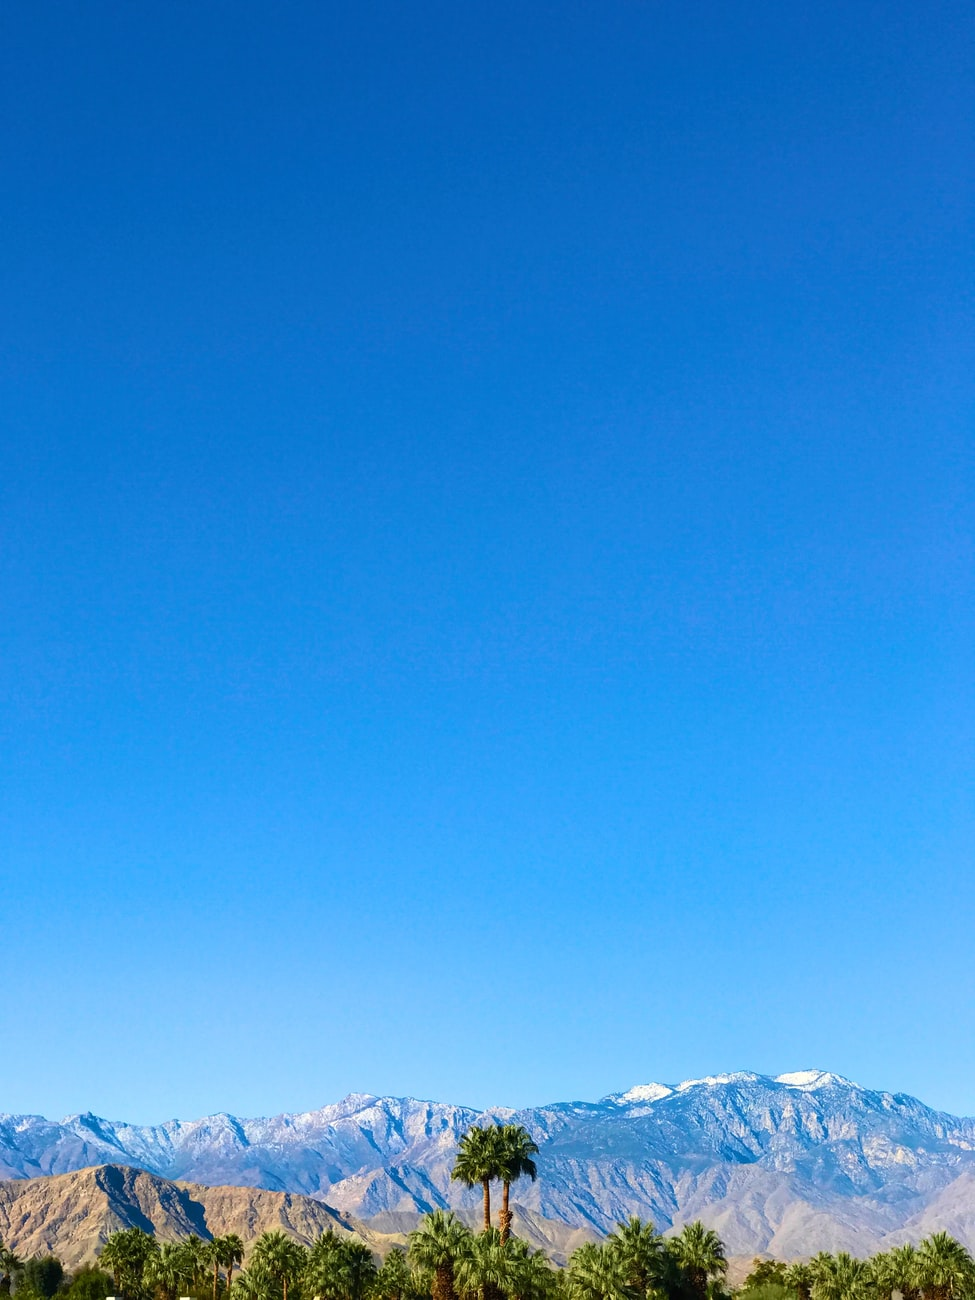 blue sky and mountains near Palm Desert, CA